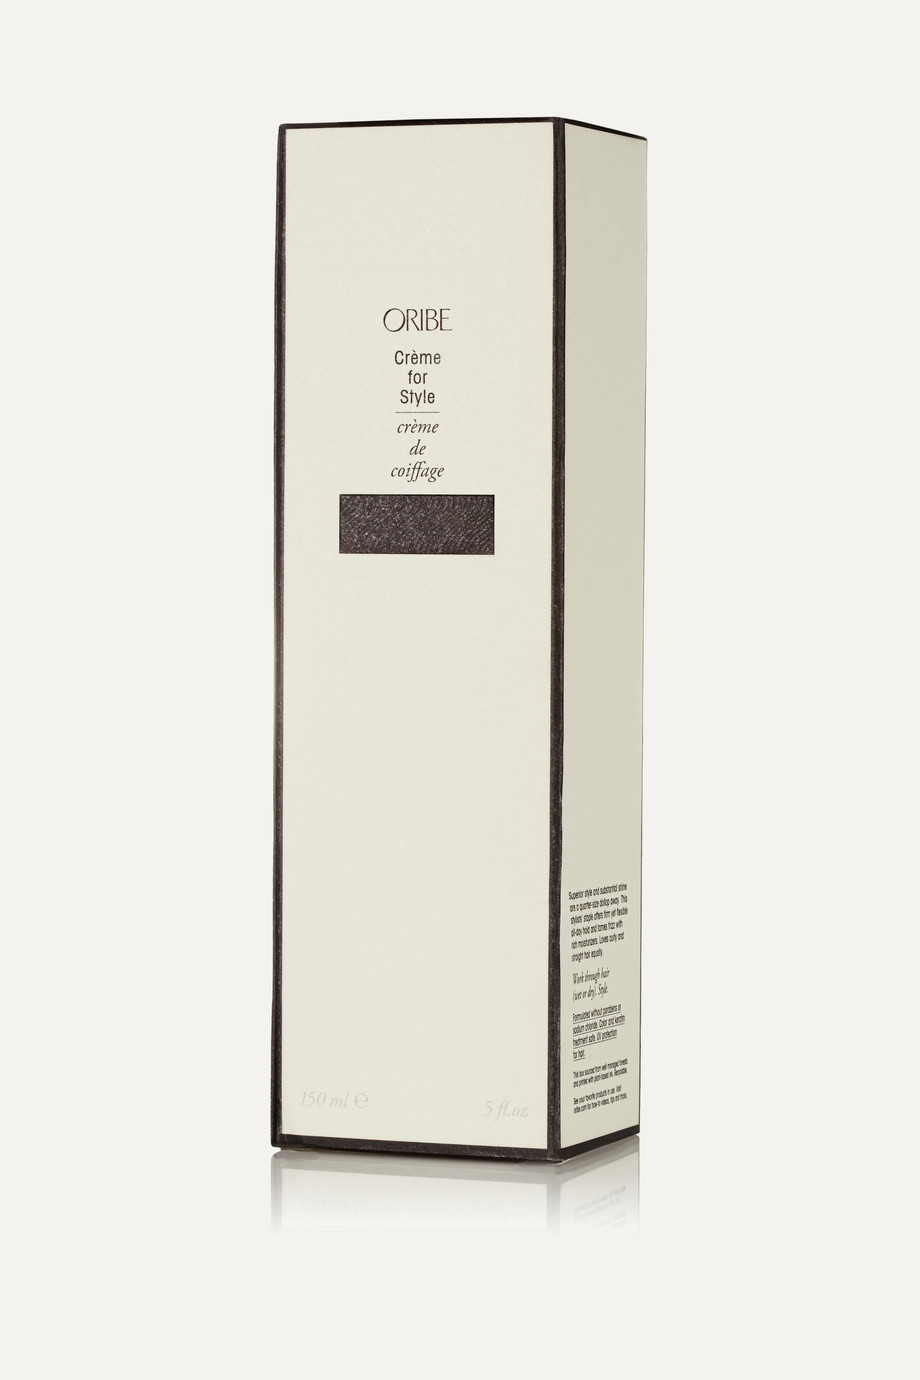 Oribe Crème for Style, 150ml